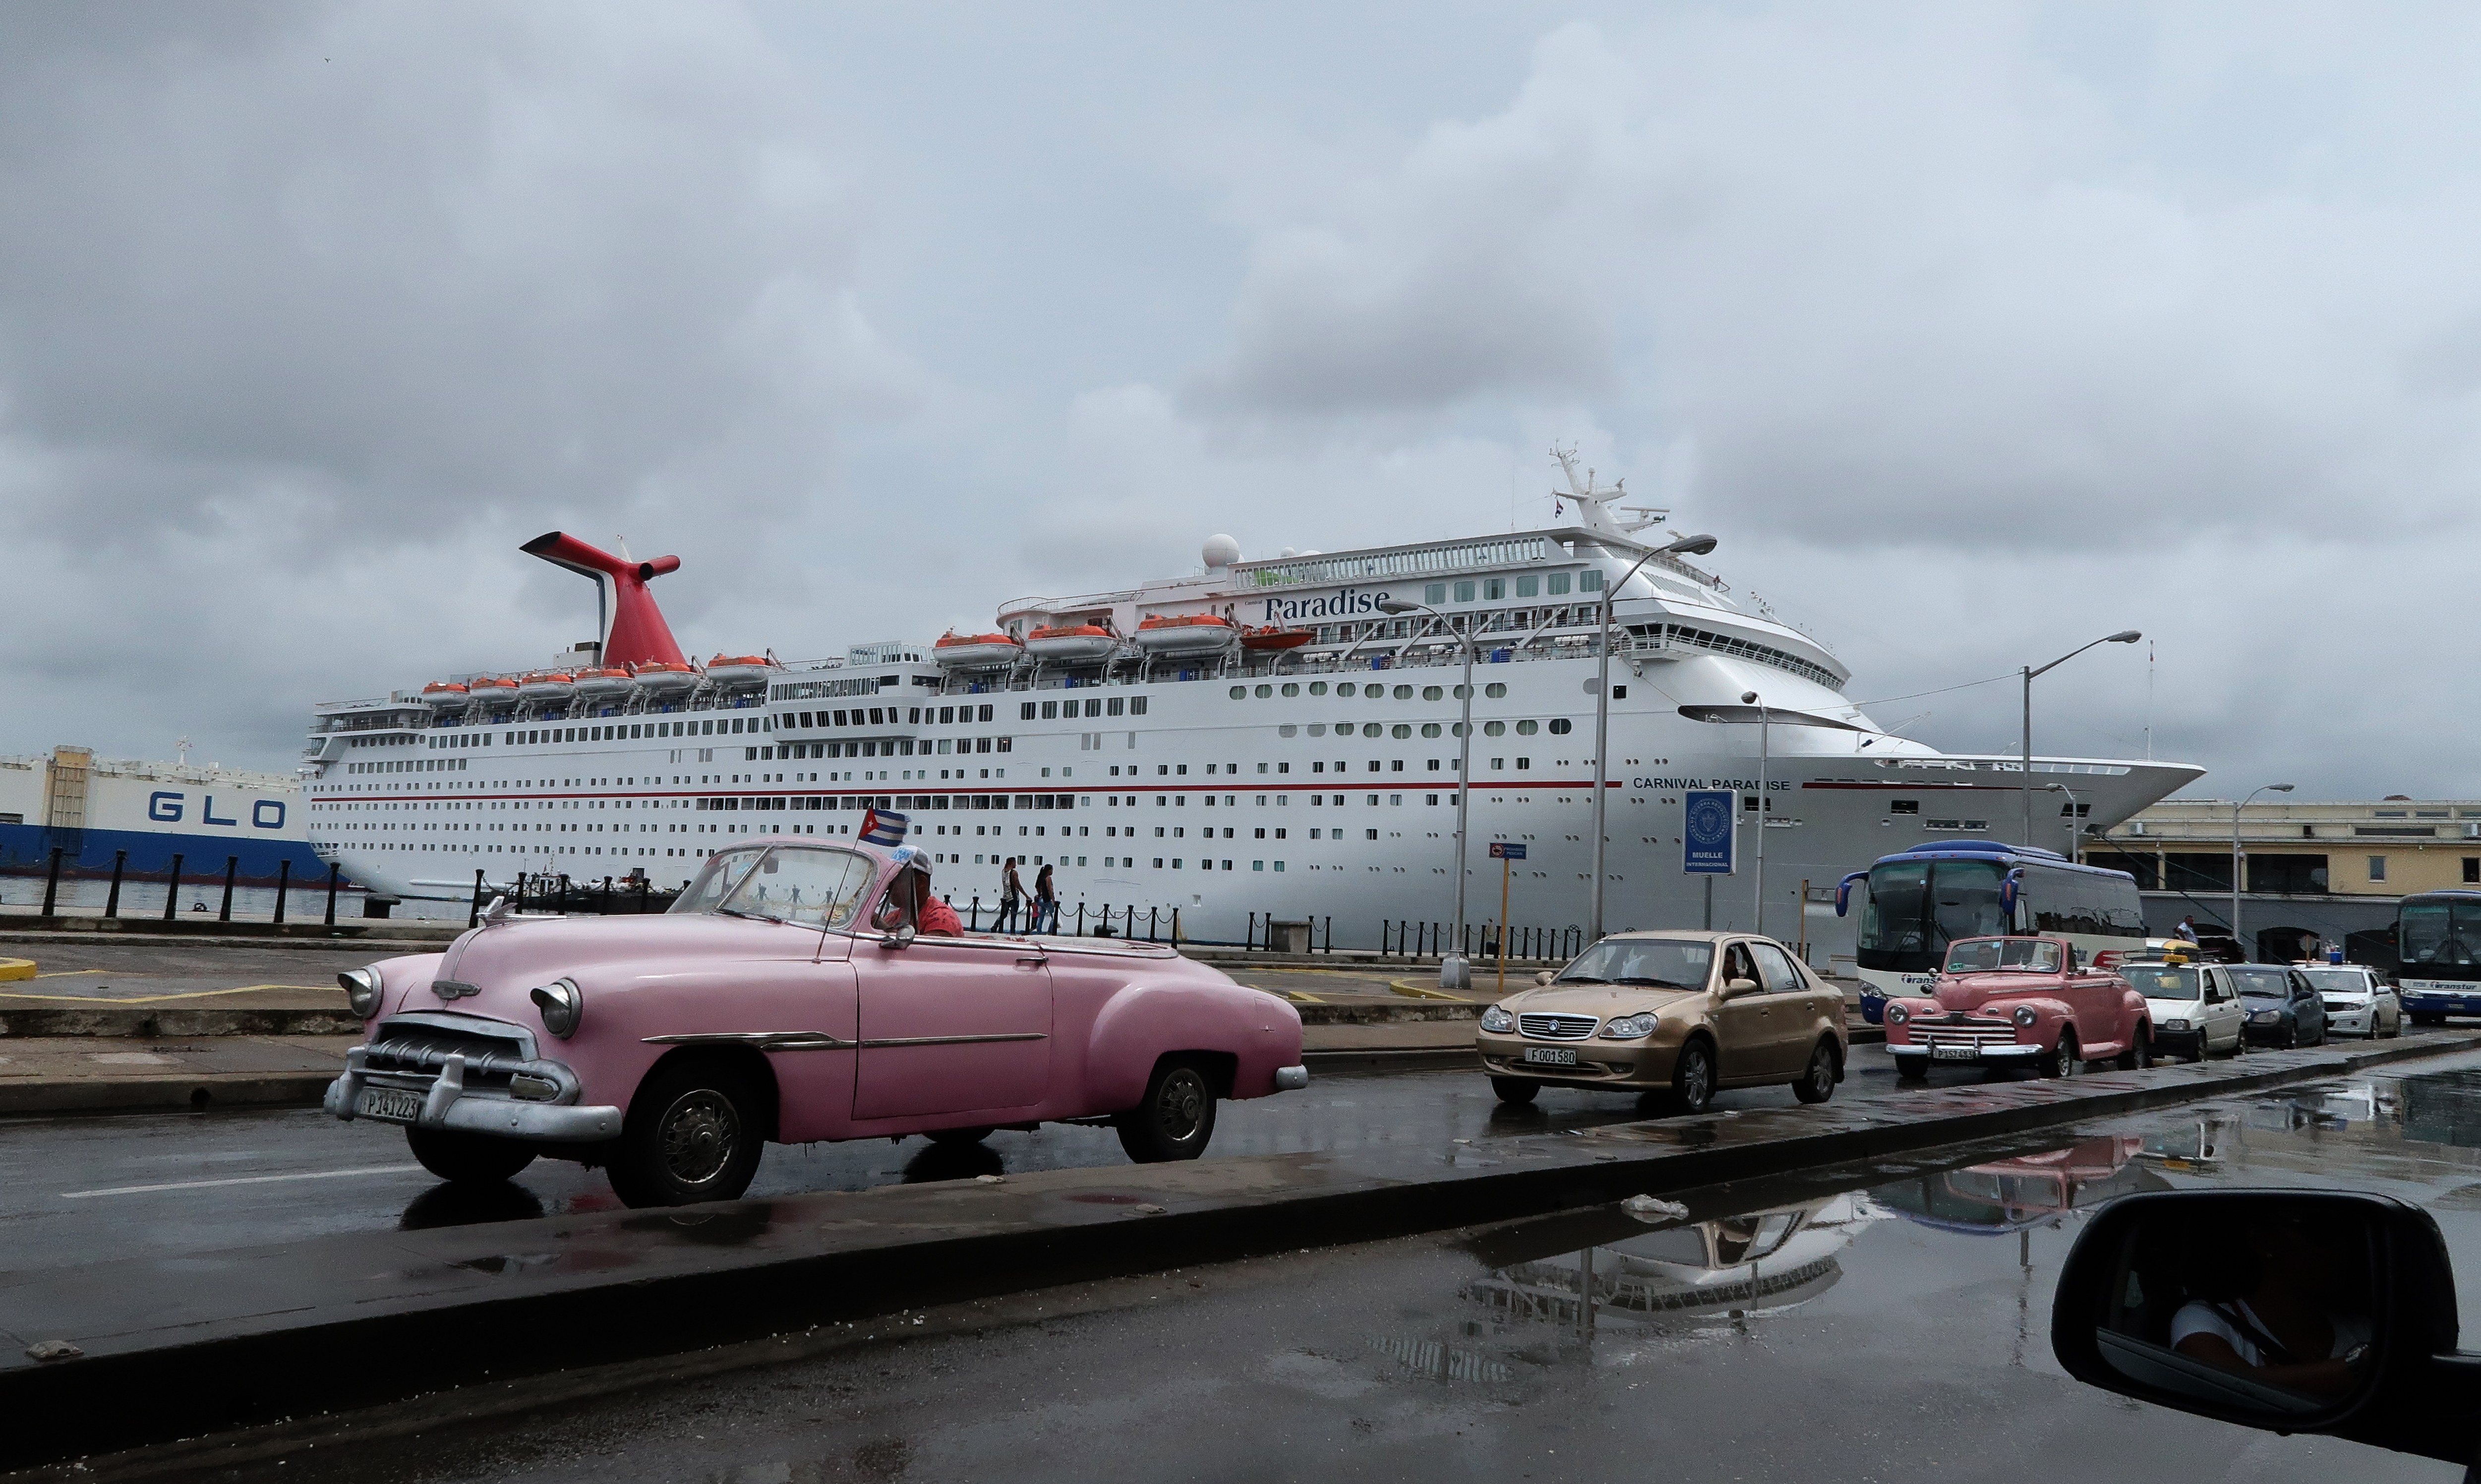 A classic car taxi drives past a cruise ship in port on October 12, 2017 in Havana, Cuba.